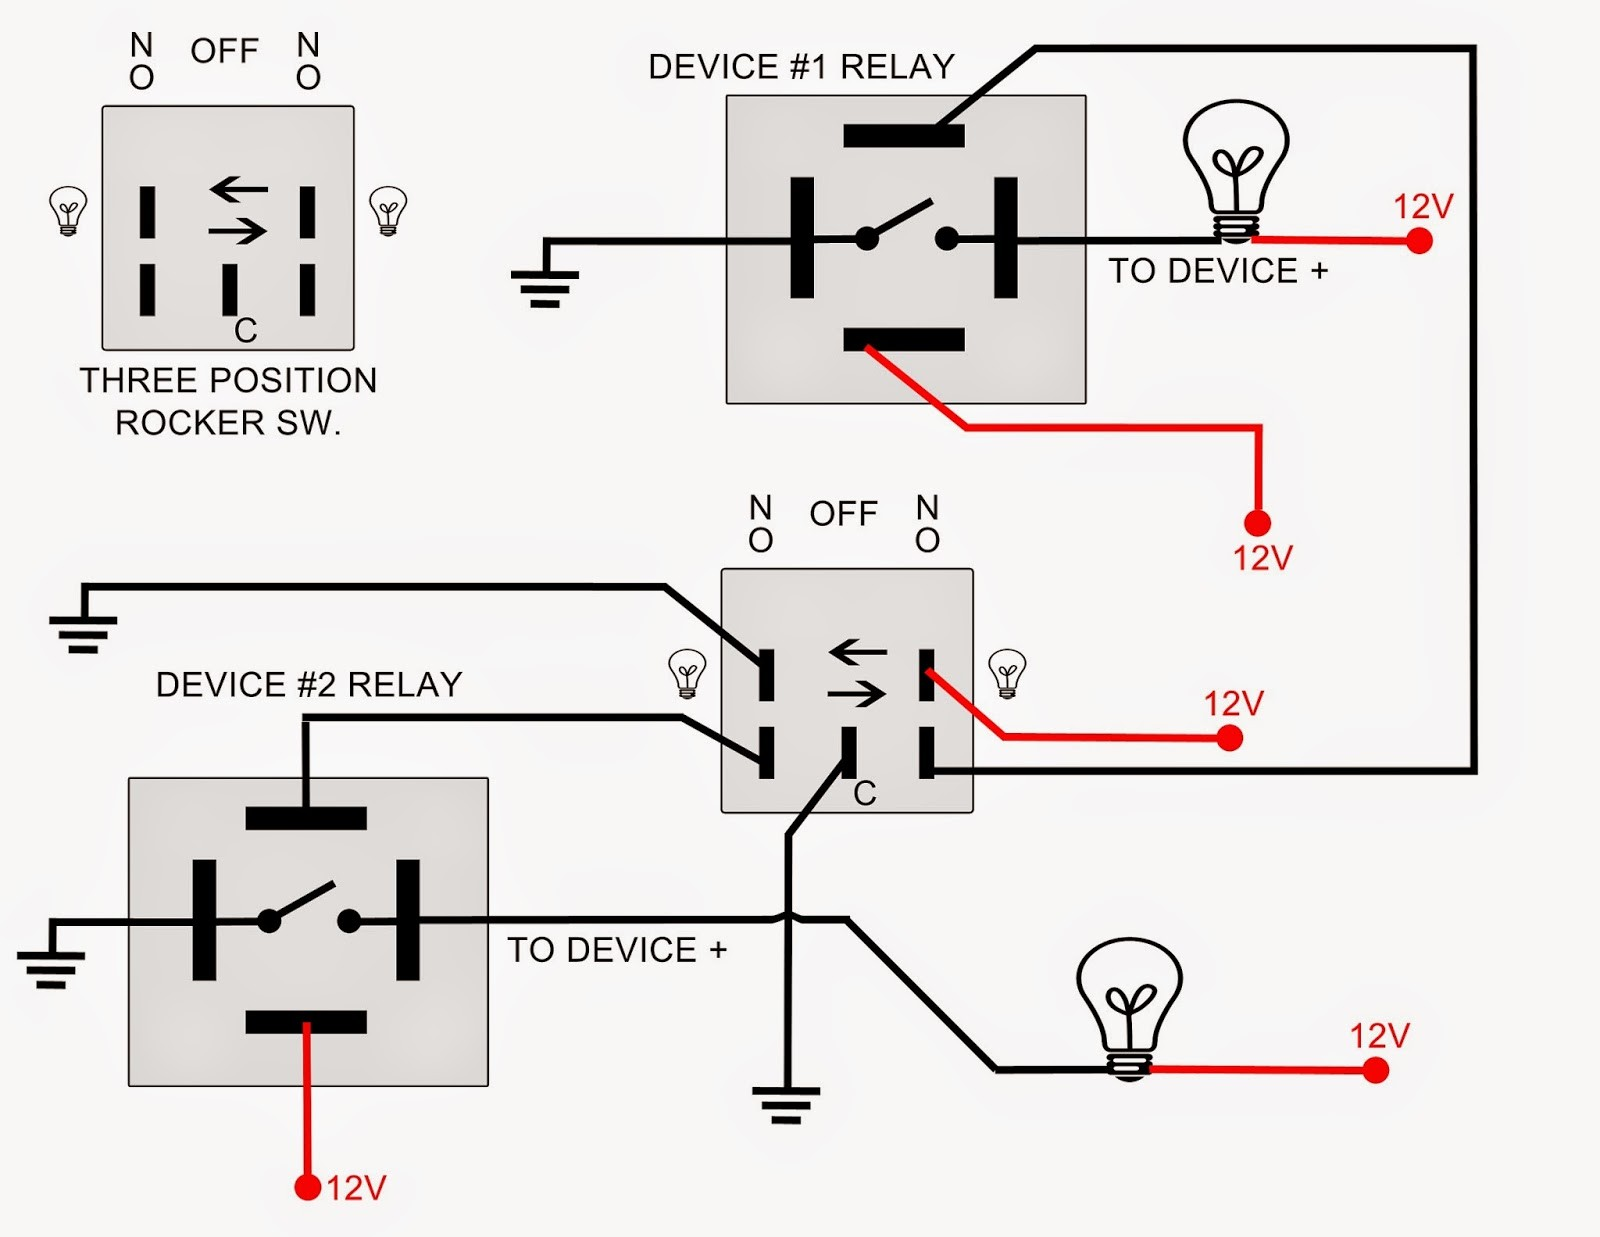 On Off On toggle Switch Wiring Diagram Switch and Wiring Led Lights Light Bar Lifetime Dpdt Wiring Of On Off On toggle Switch Wiring Diagram